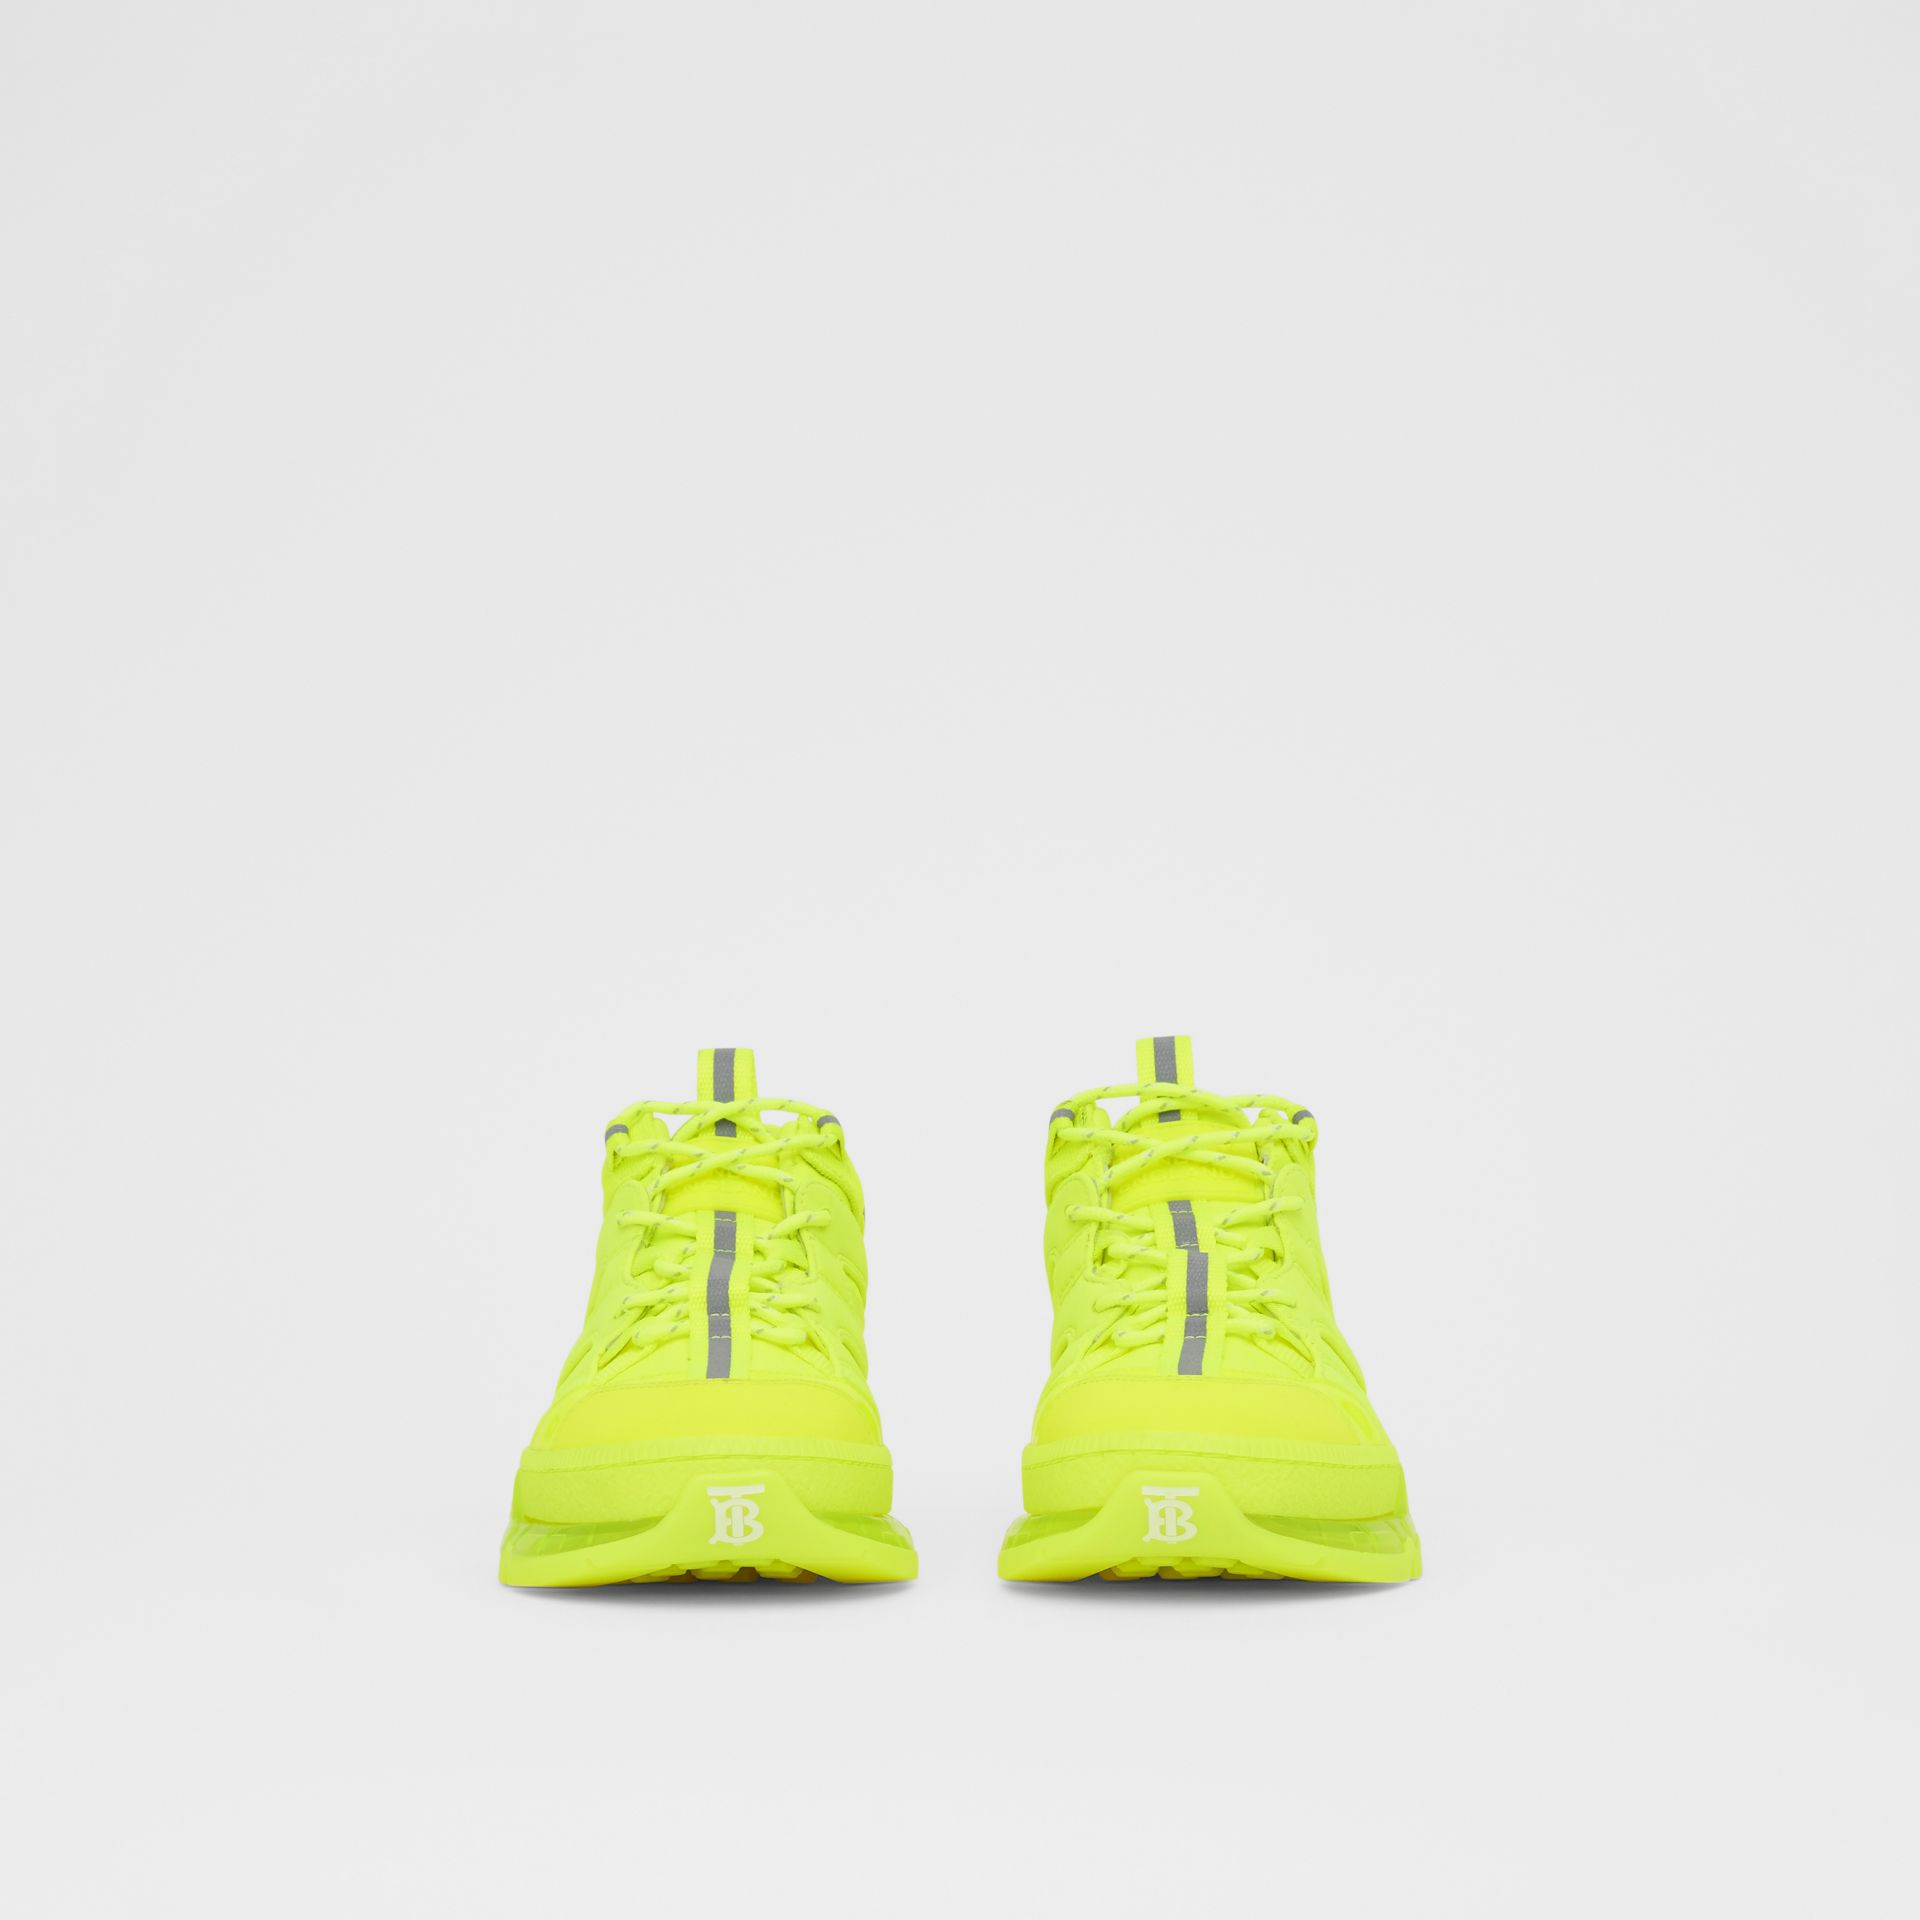 Nylon and Cotton Union Sneakers in Fluorescent Yellow - Women | Burberry - gallery image 3